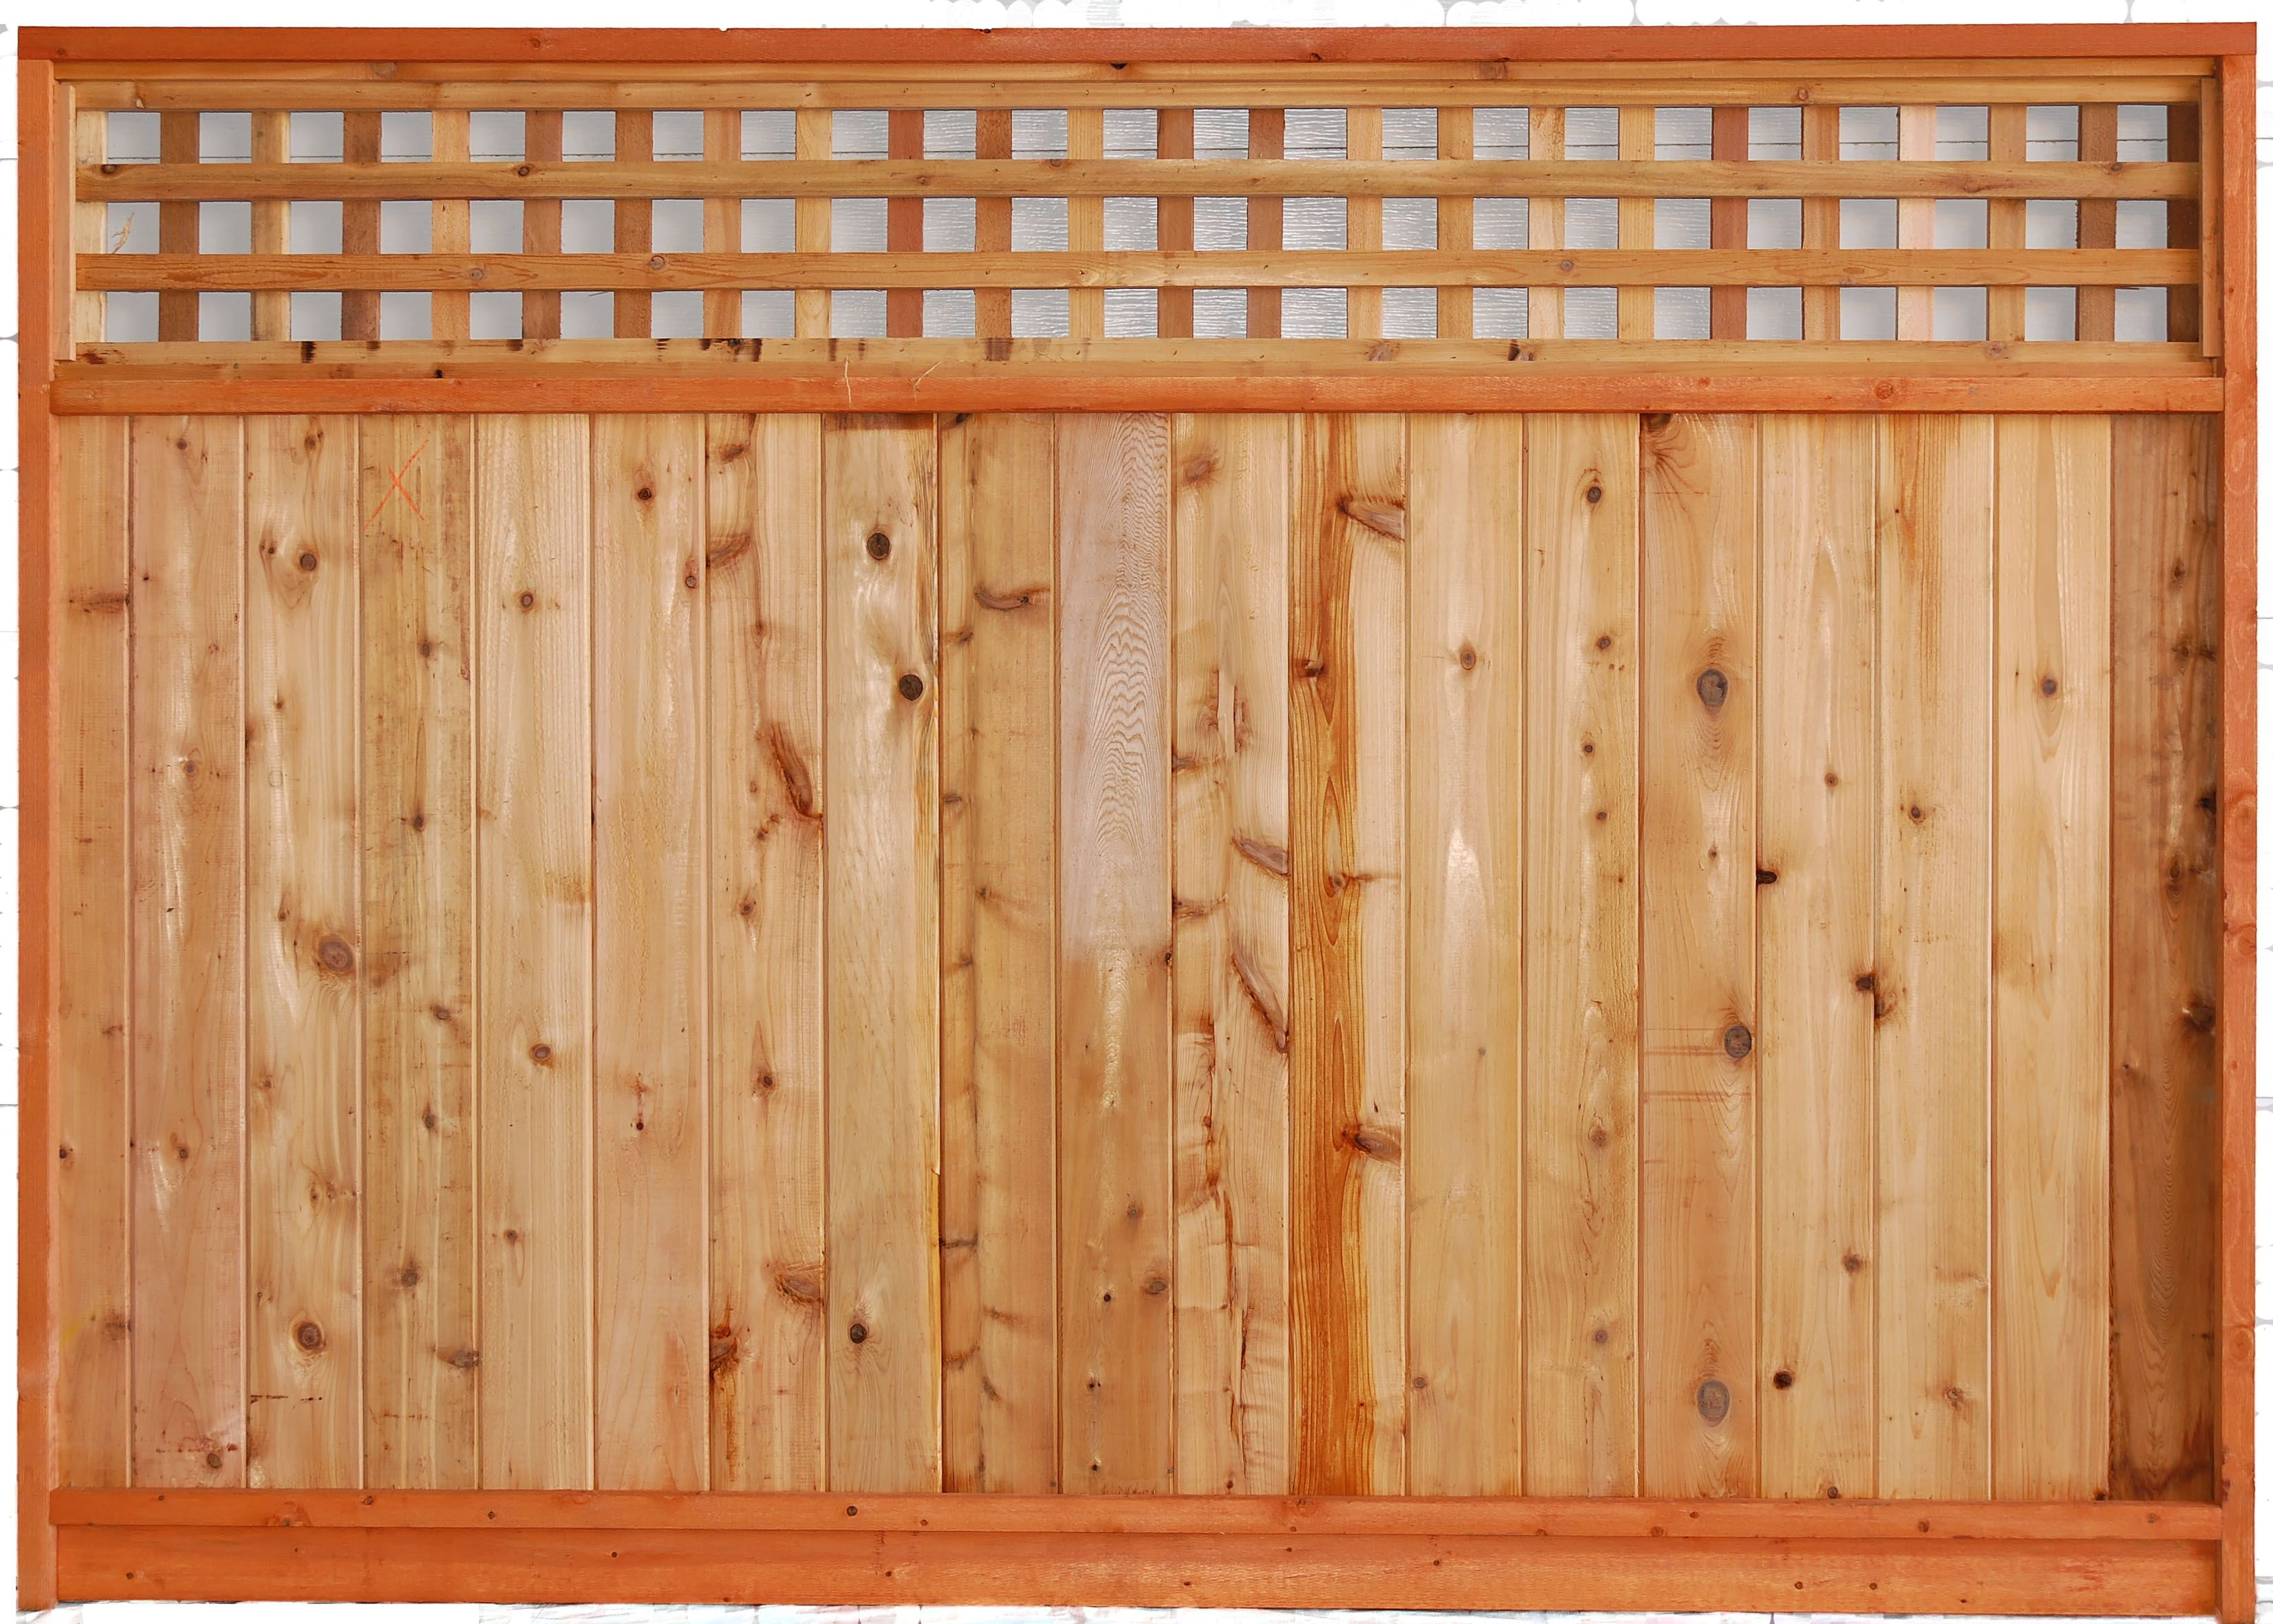 Aim Cedar Works Ltd Quality Fence Panels Decks and Renovations